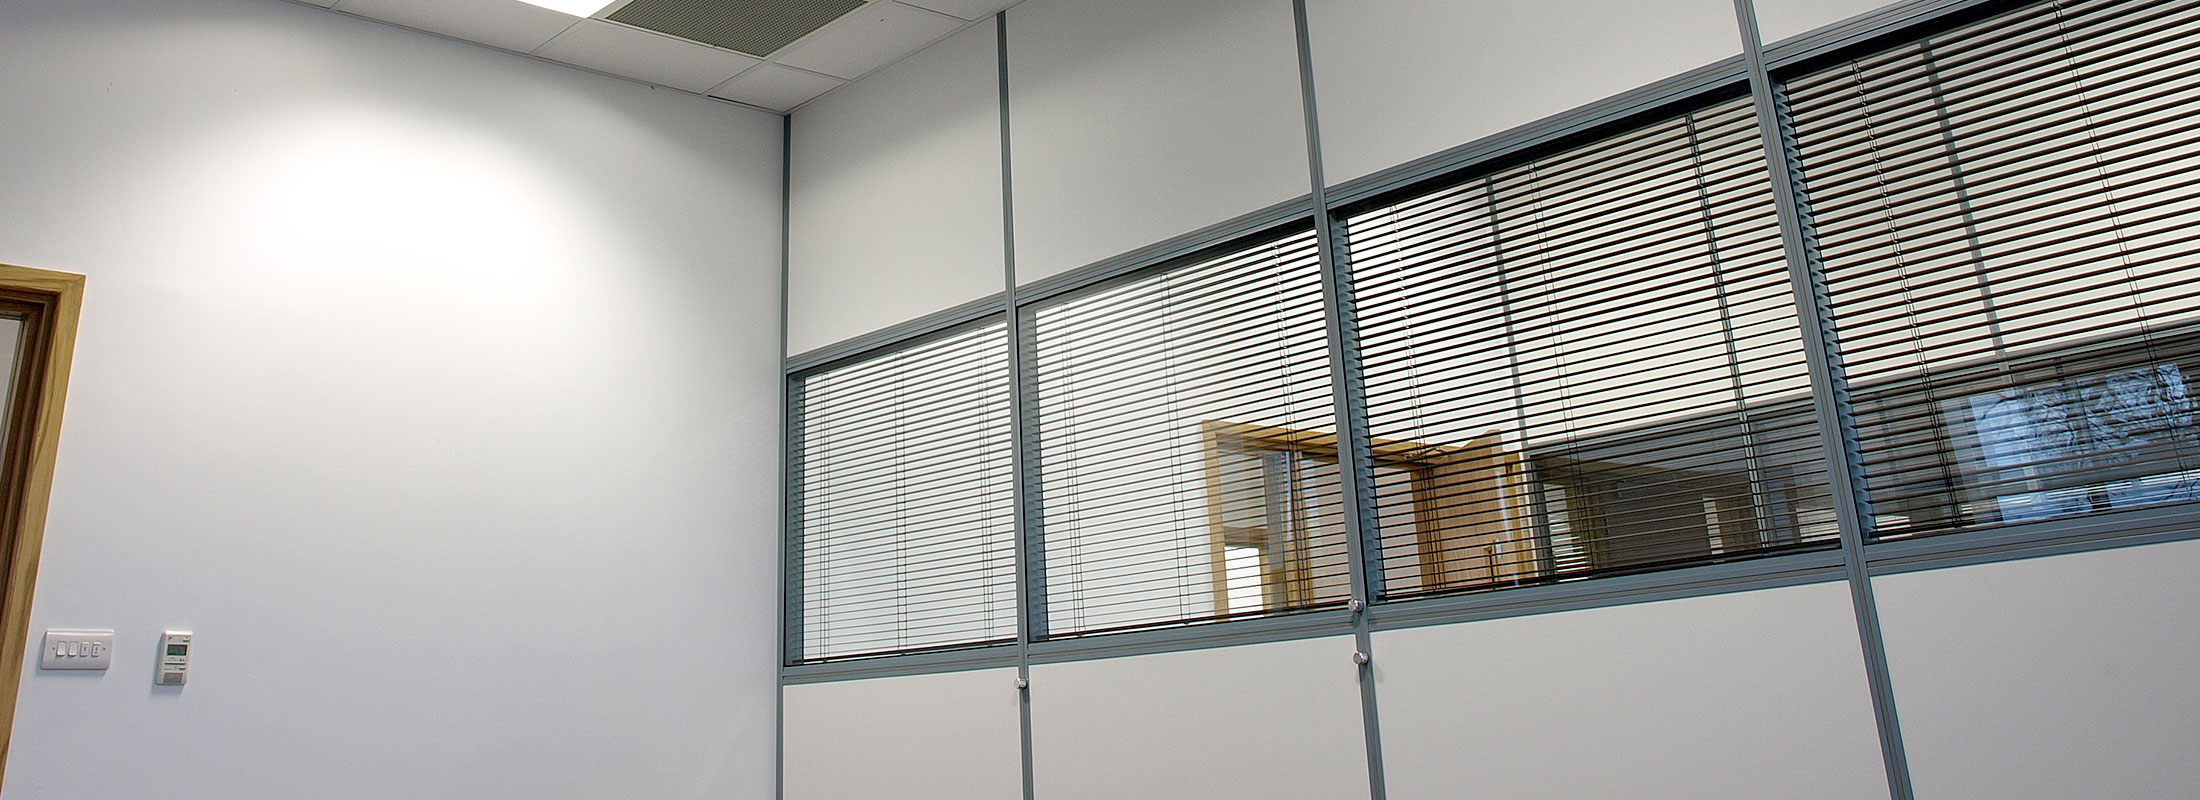 ASC | Partitioning-Installers-Suppliers-Fitters-Finishers-East Anglia